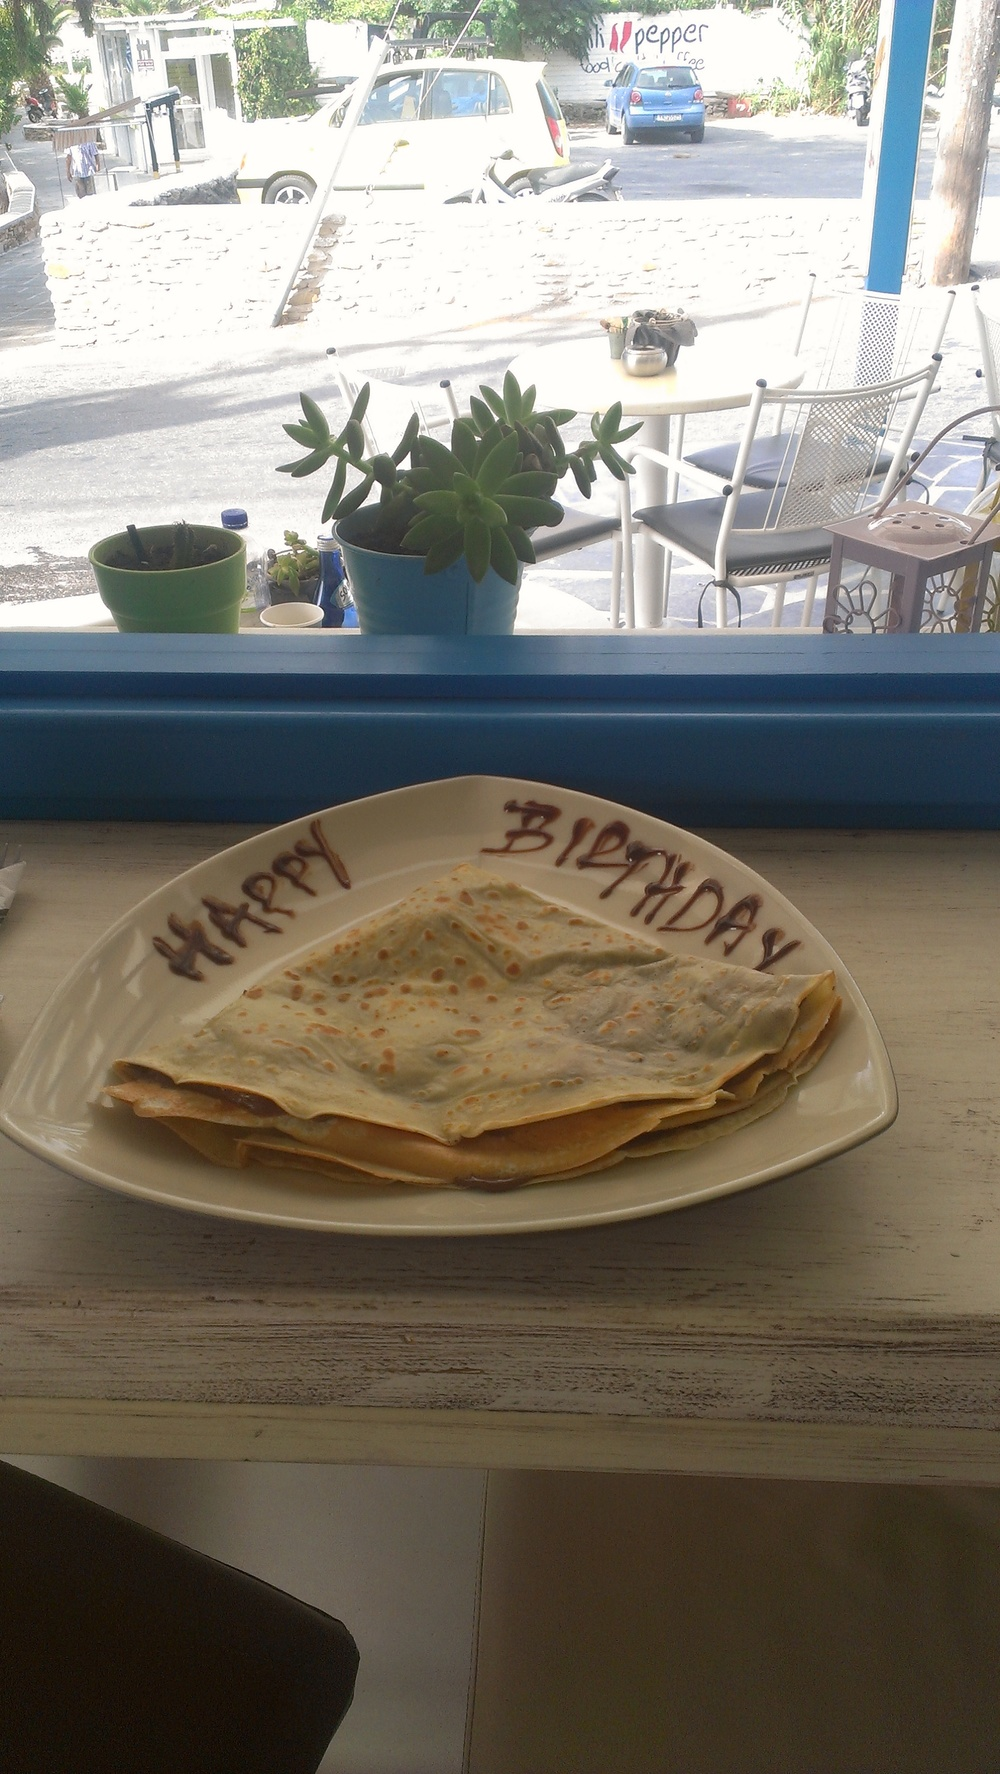 Birthday Crepe!